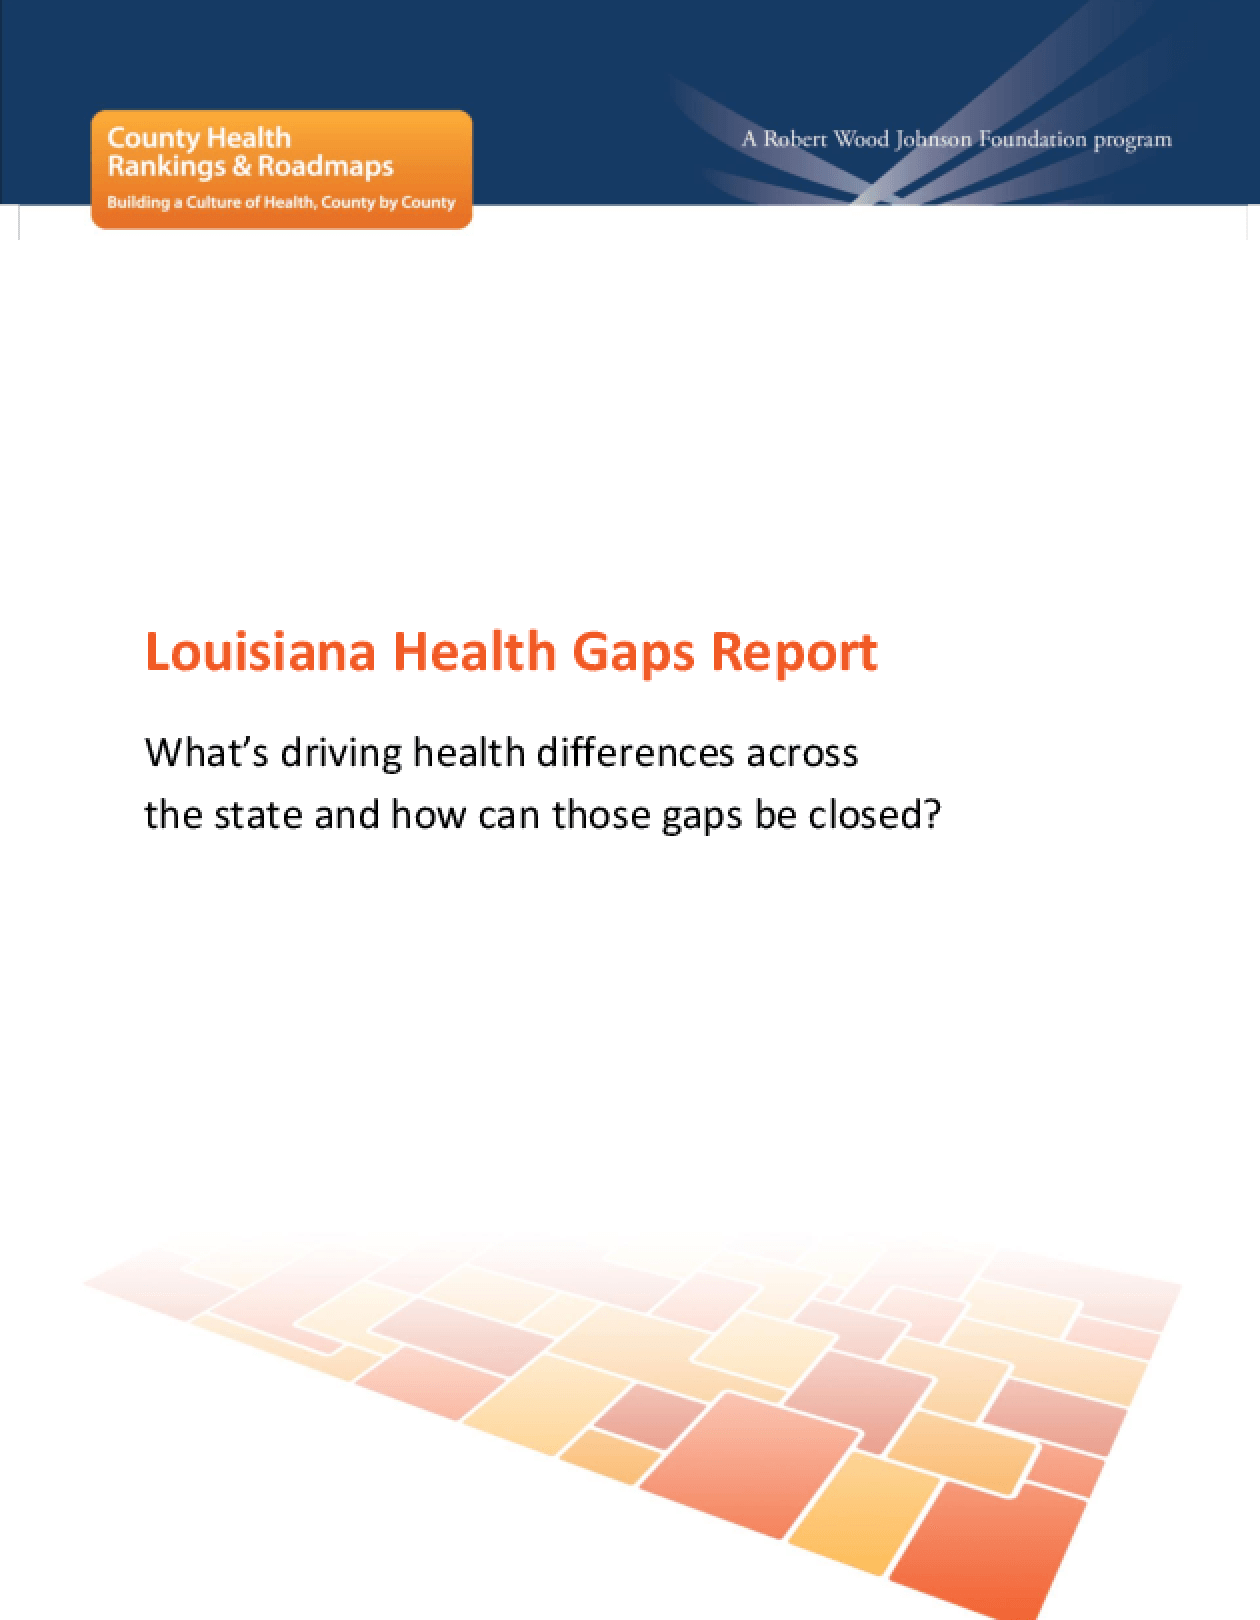 Louisiana Health Gaps Report: What's Driving Health Differences Across the State and How Can Those Gaps Be Closed?